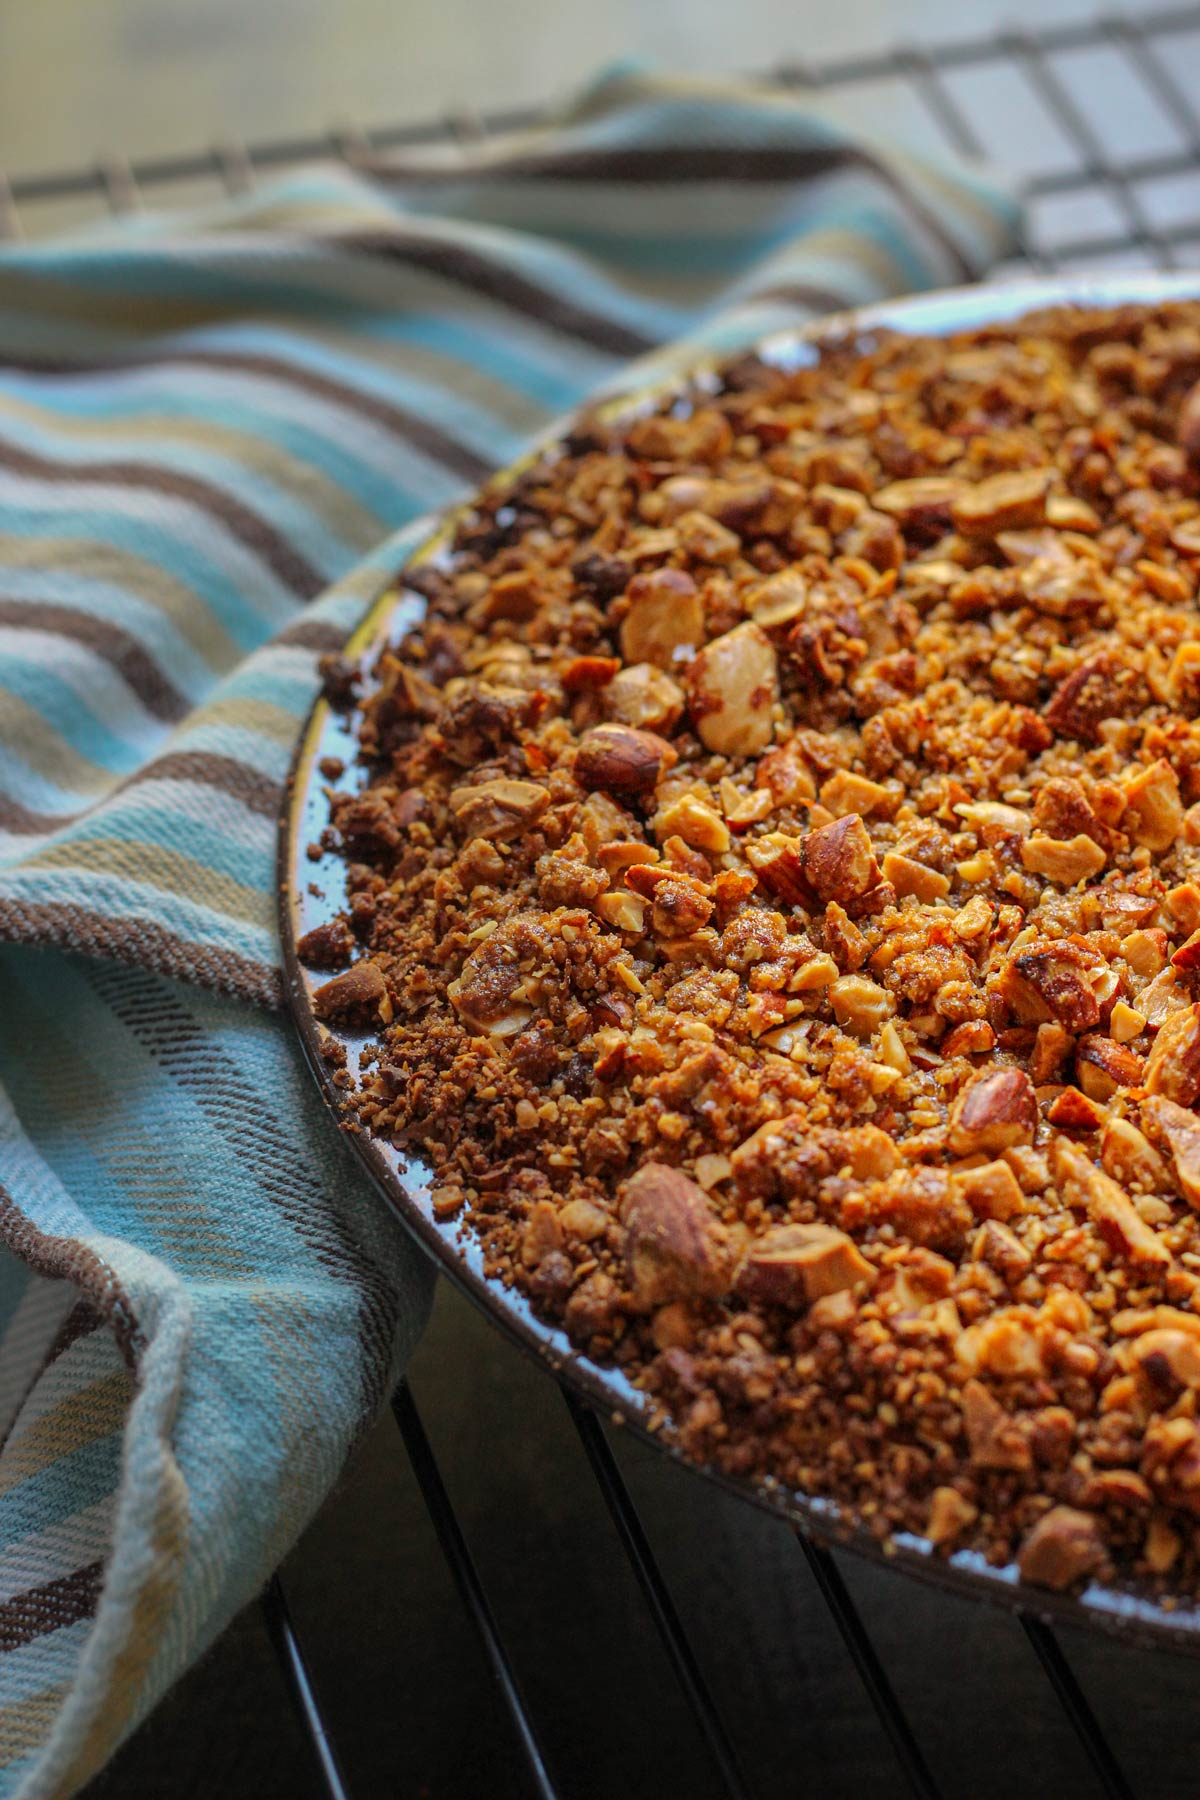 streusel topped pumpkin pie in a graham cracker crust set on a blue and brown striped cloth.